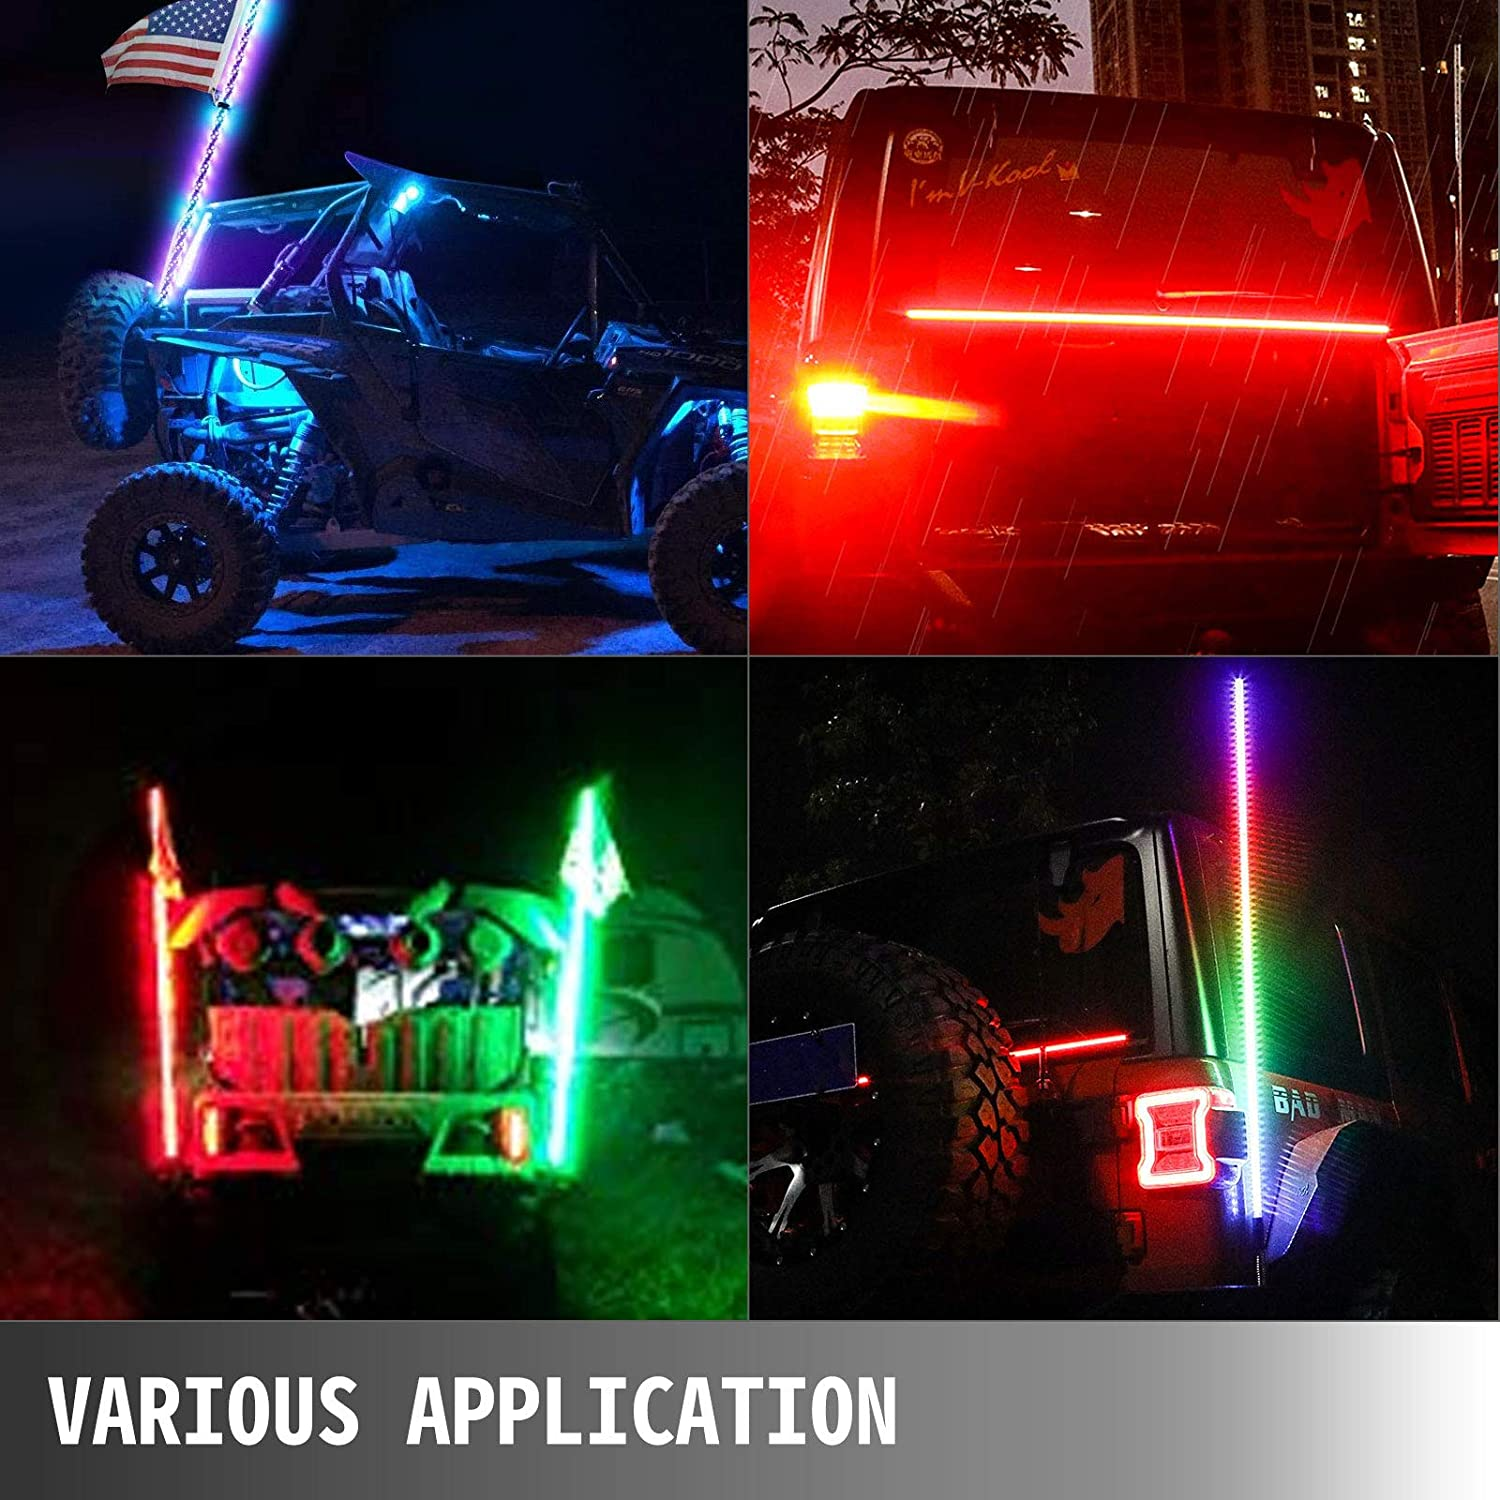 Bestauto Led Whip Lights RGB Color Lighted Whips for UTV 5ft Led CB Antenna 1pc Off-road Whip Remote Wireless Control LED Whips for Sand Dune Buggy UTV ATV Polaris Accessories RZR 4X4 Truck Jeep